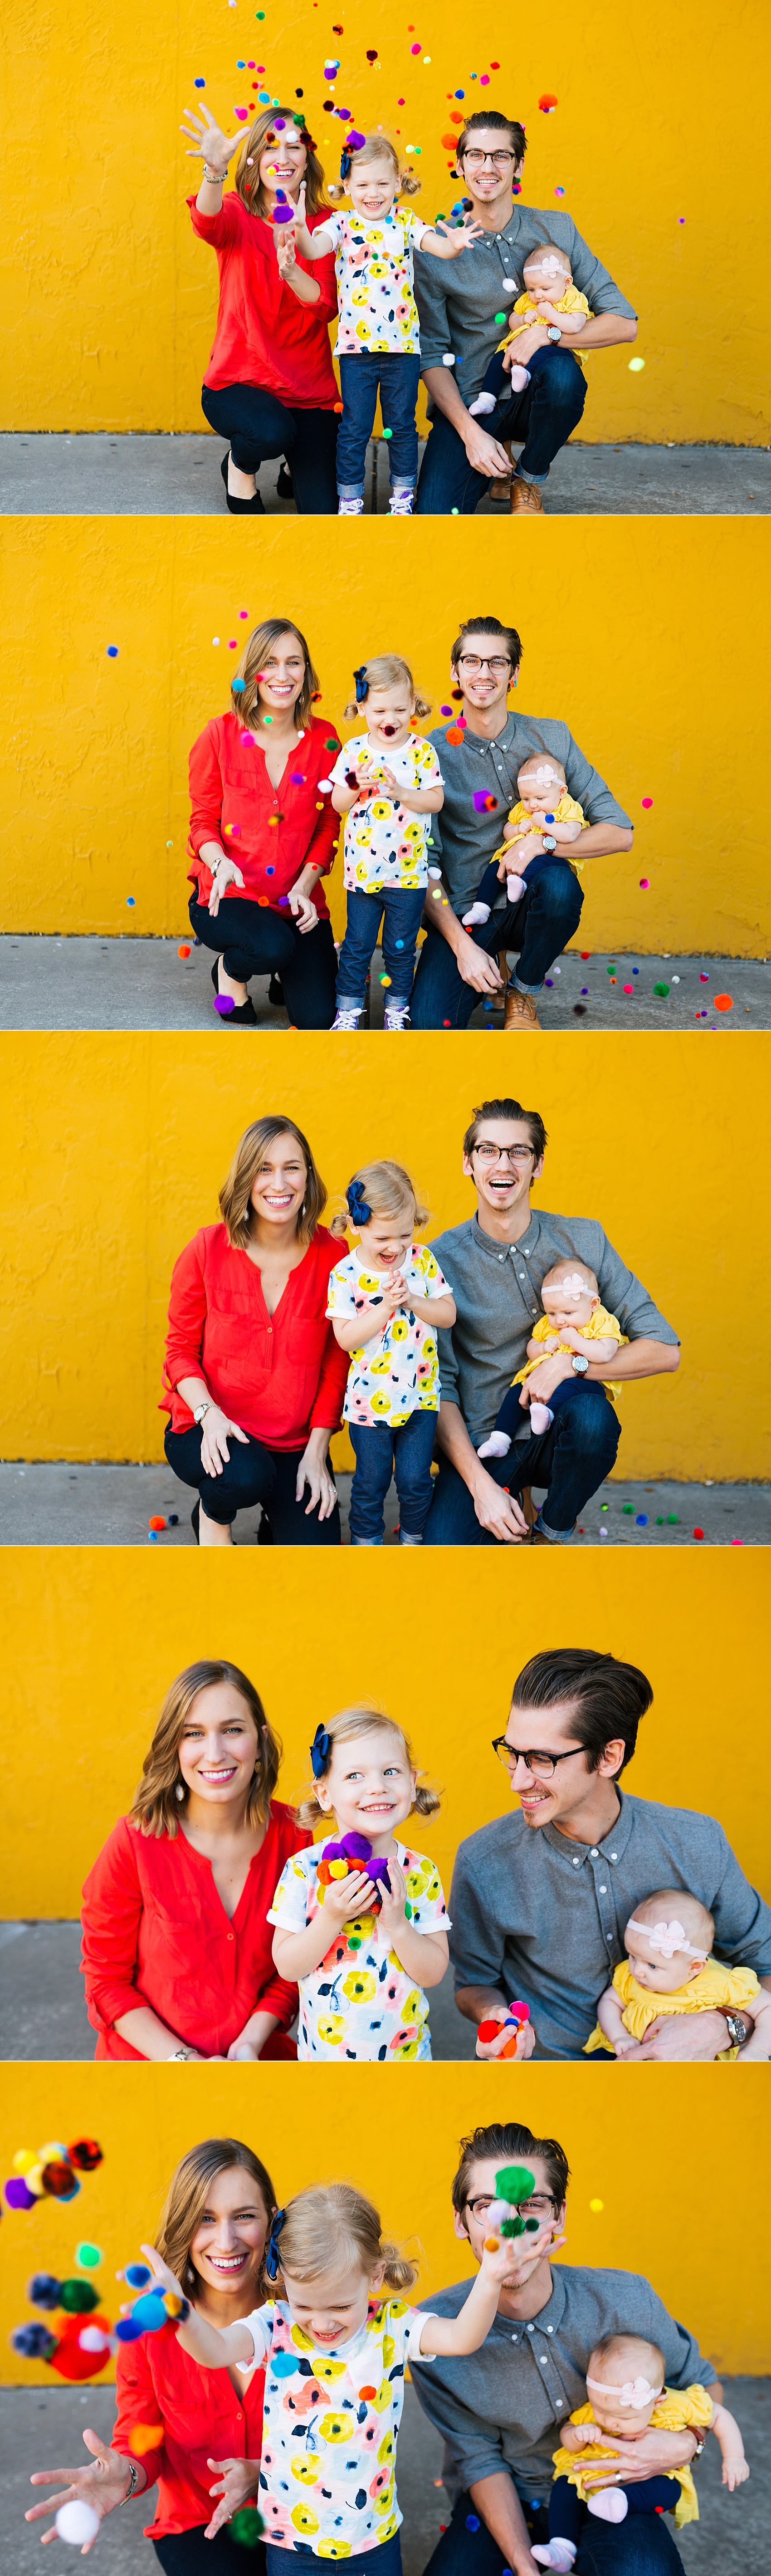 tampa family portrait photographer-2